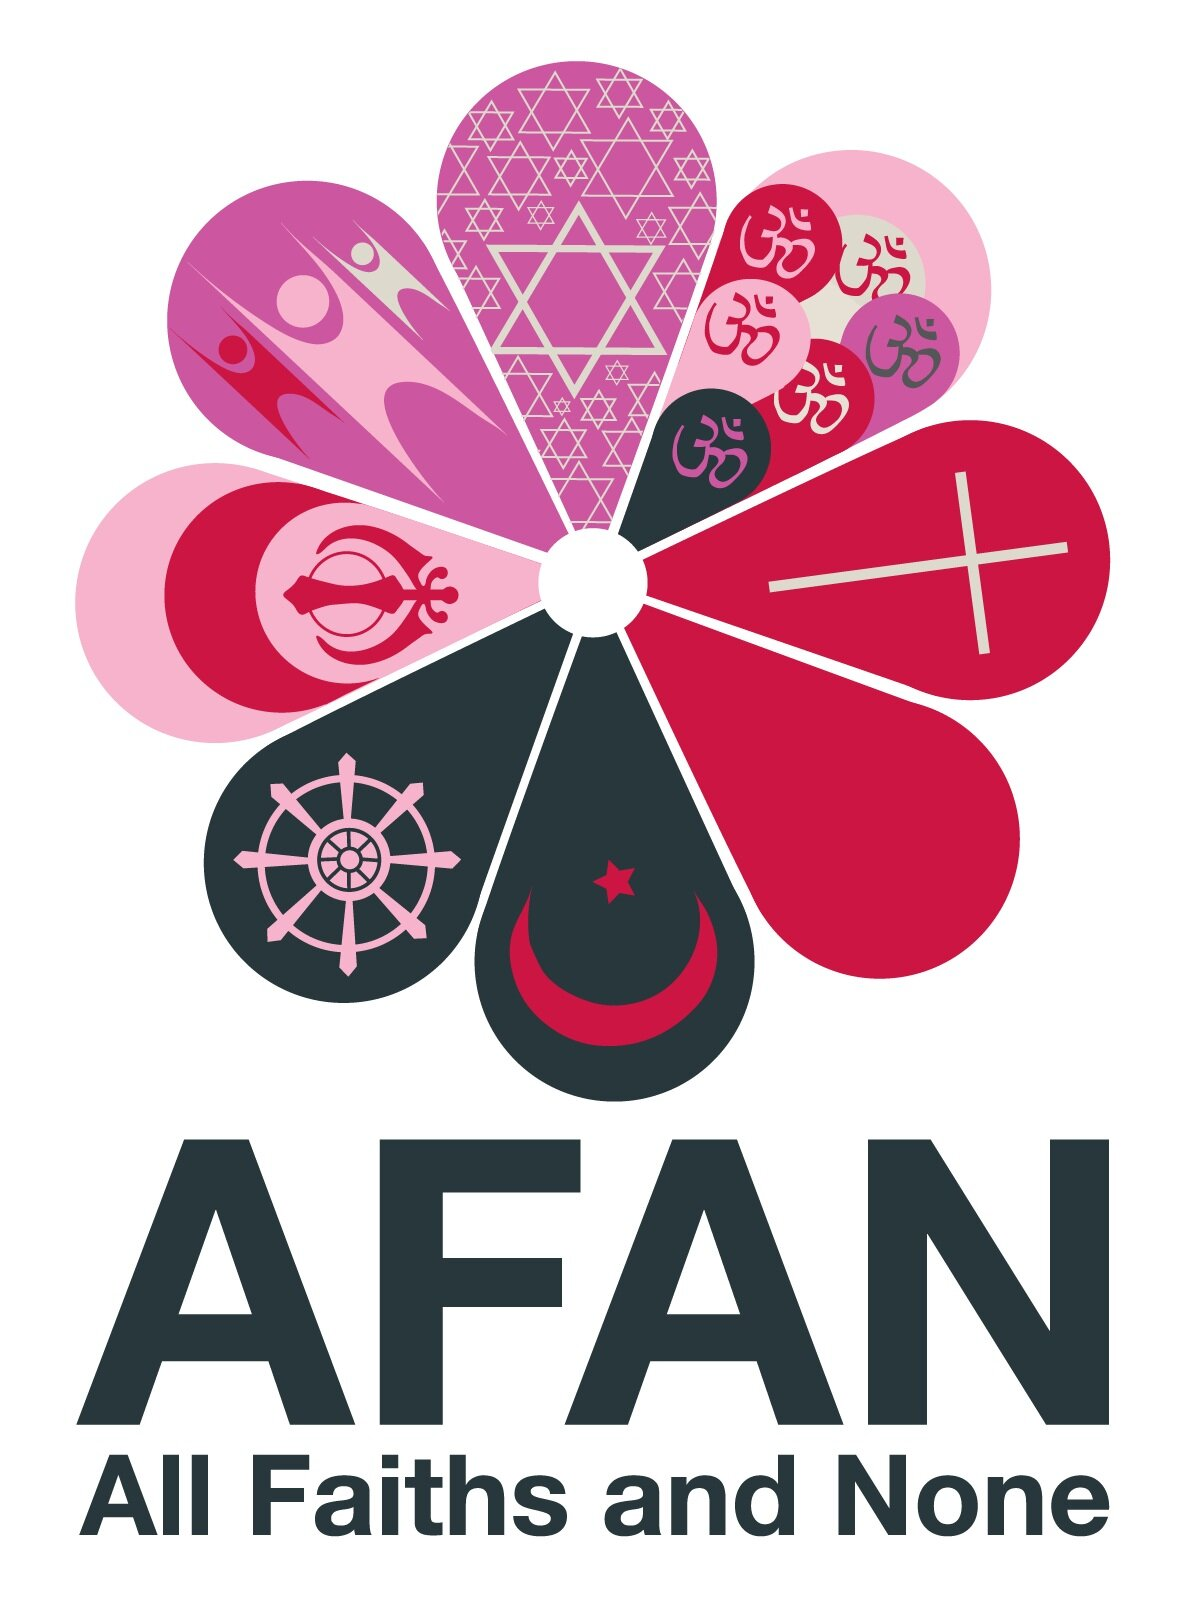 AFAN -All Faiths and None